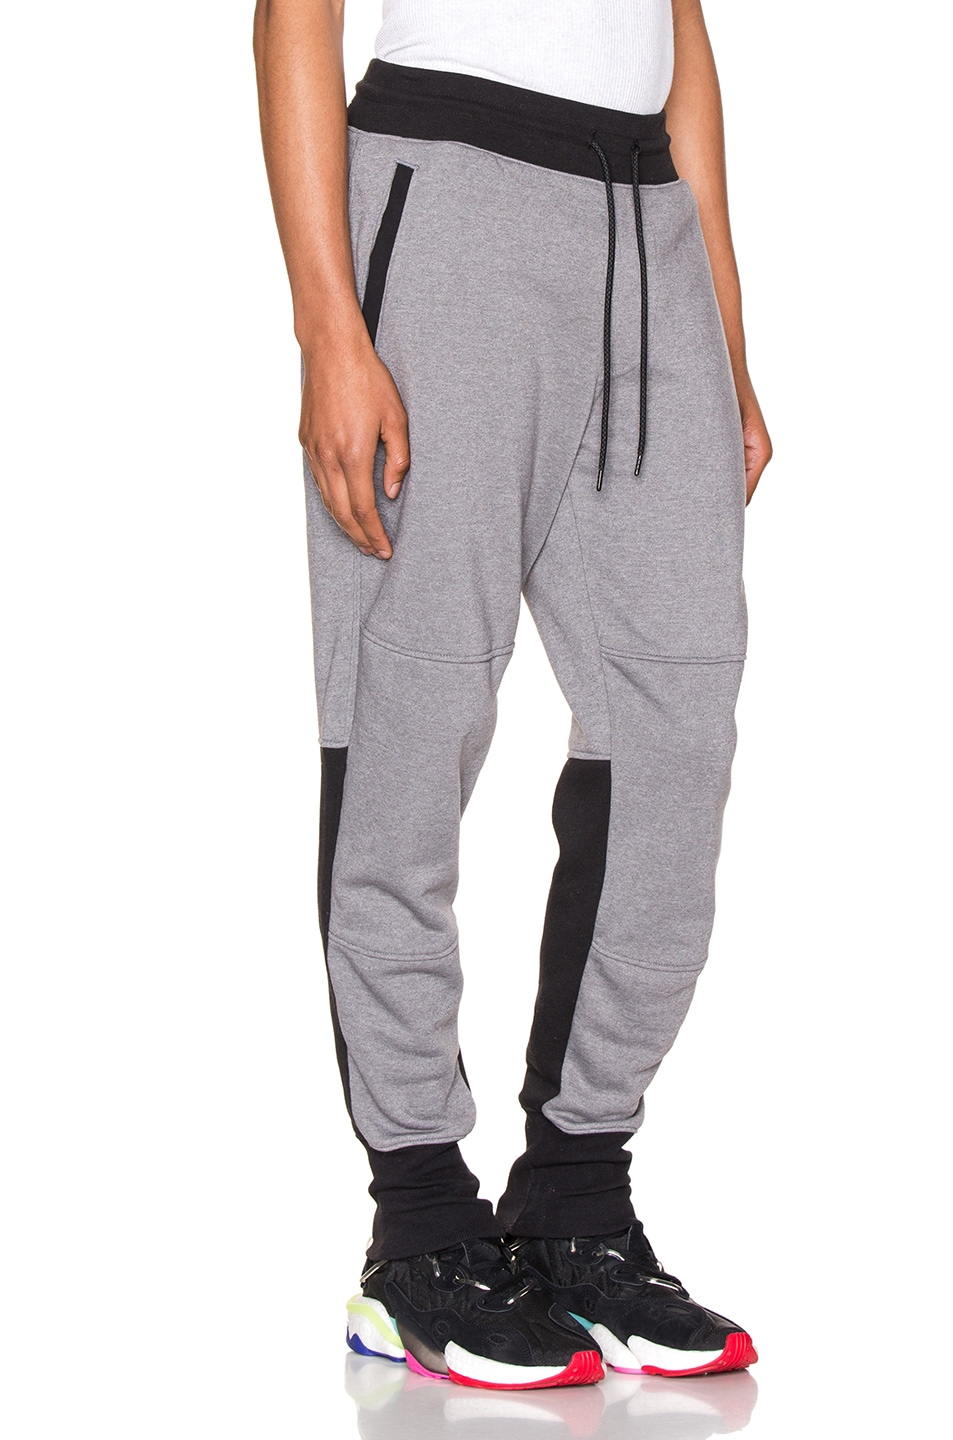 Image 3 of The North Face NSE Graphic Pant in TNF Medium Grey Heather